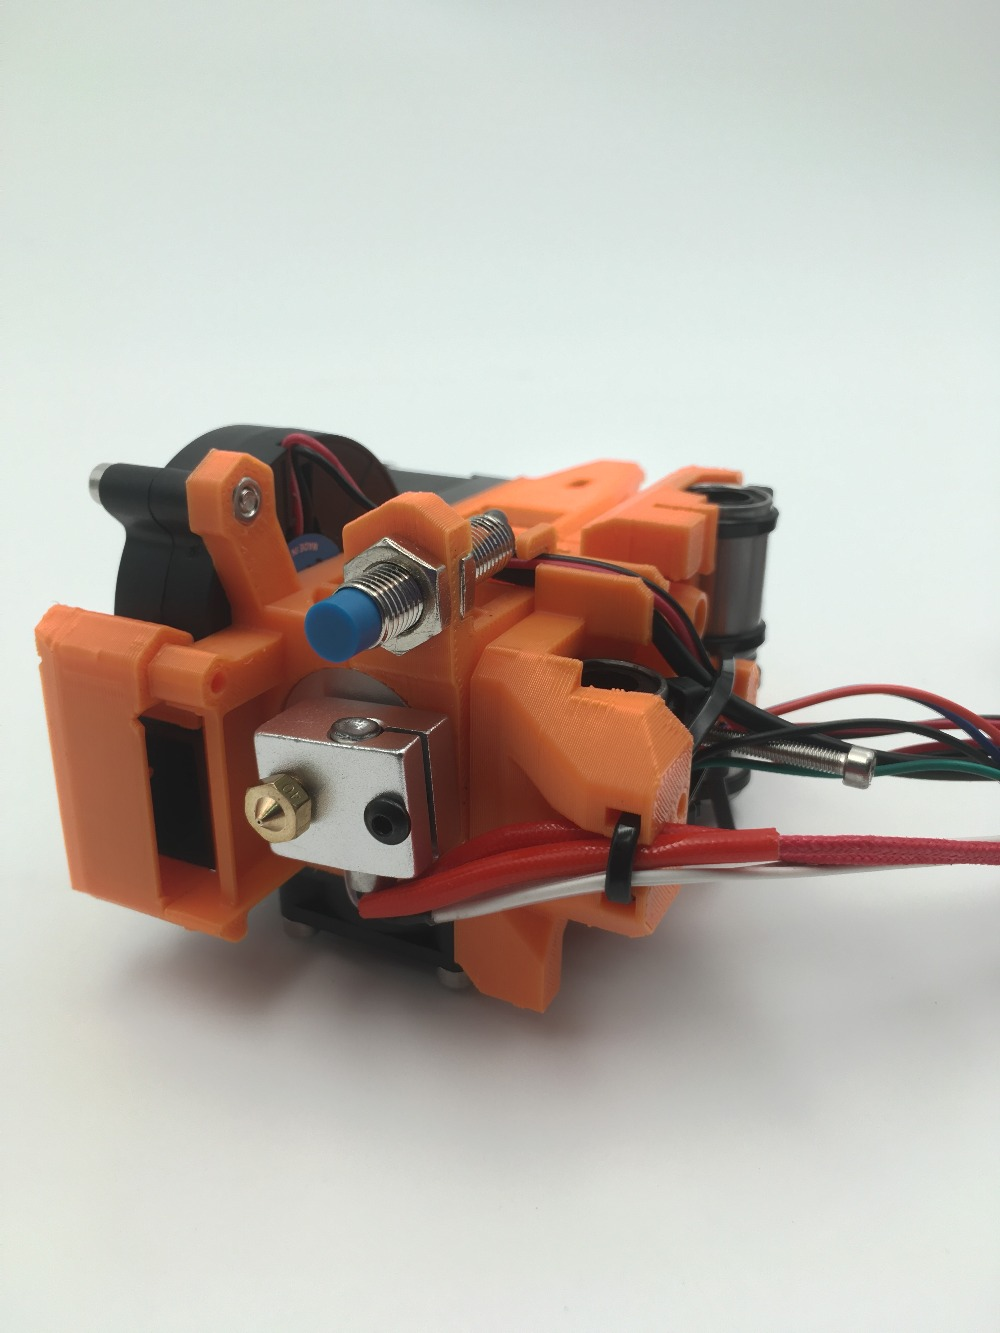 Prusa I3 Mk2/mk2s Extruder Full Kit, PLA Printed Parts ,cloned Btech Dual-drive Gears,with Hotend, X Carriage, P.I.N.D.A. Probe